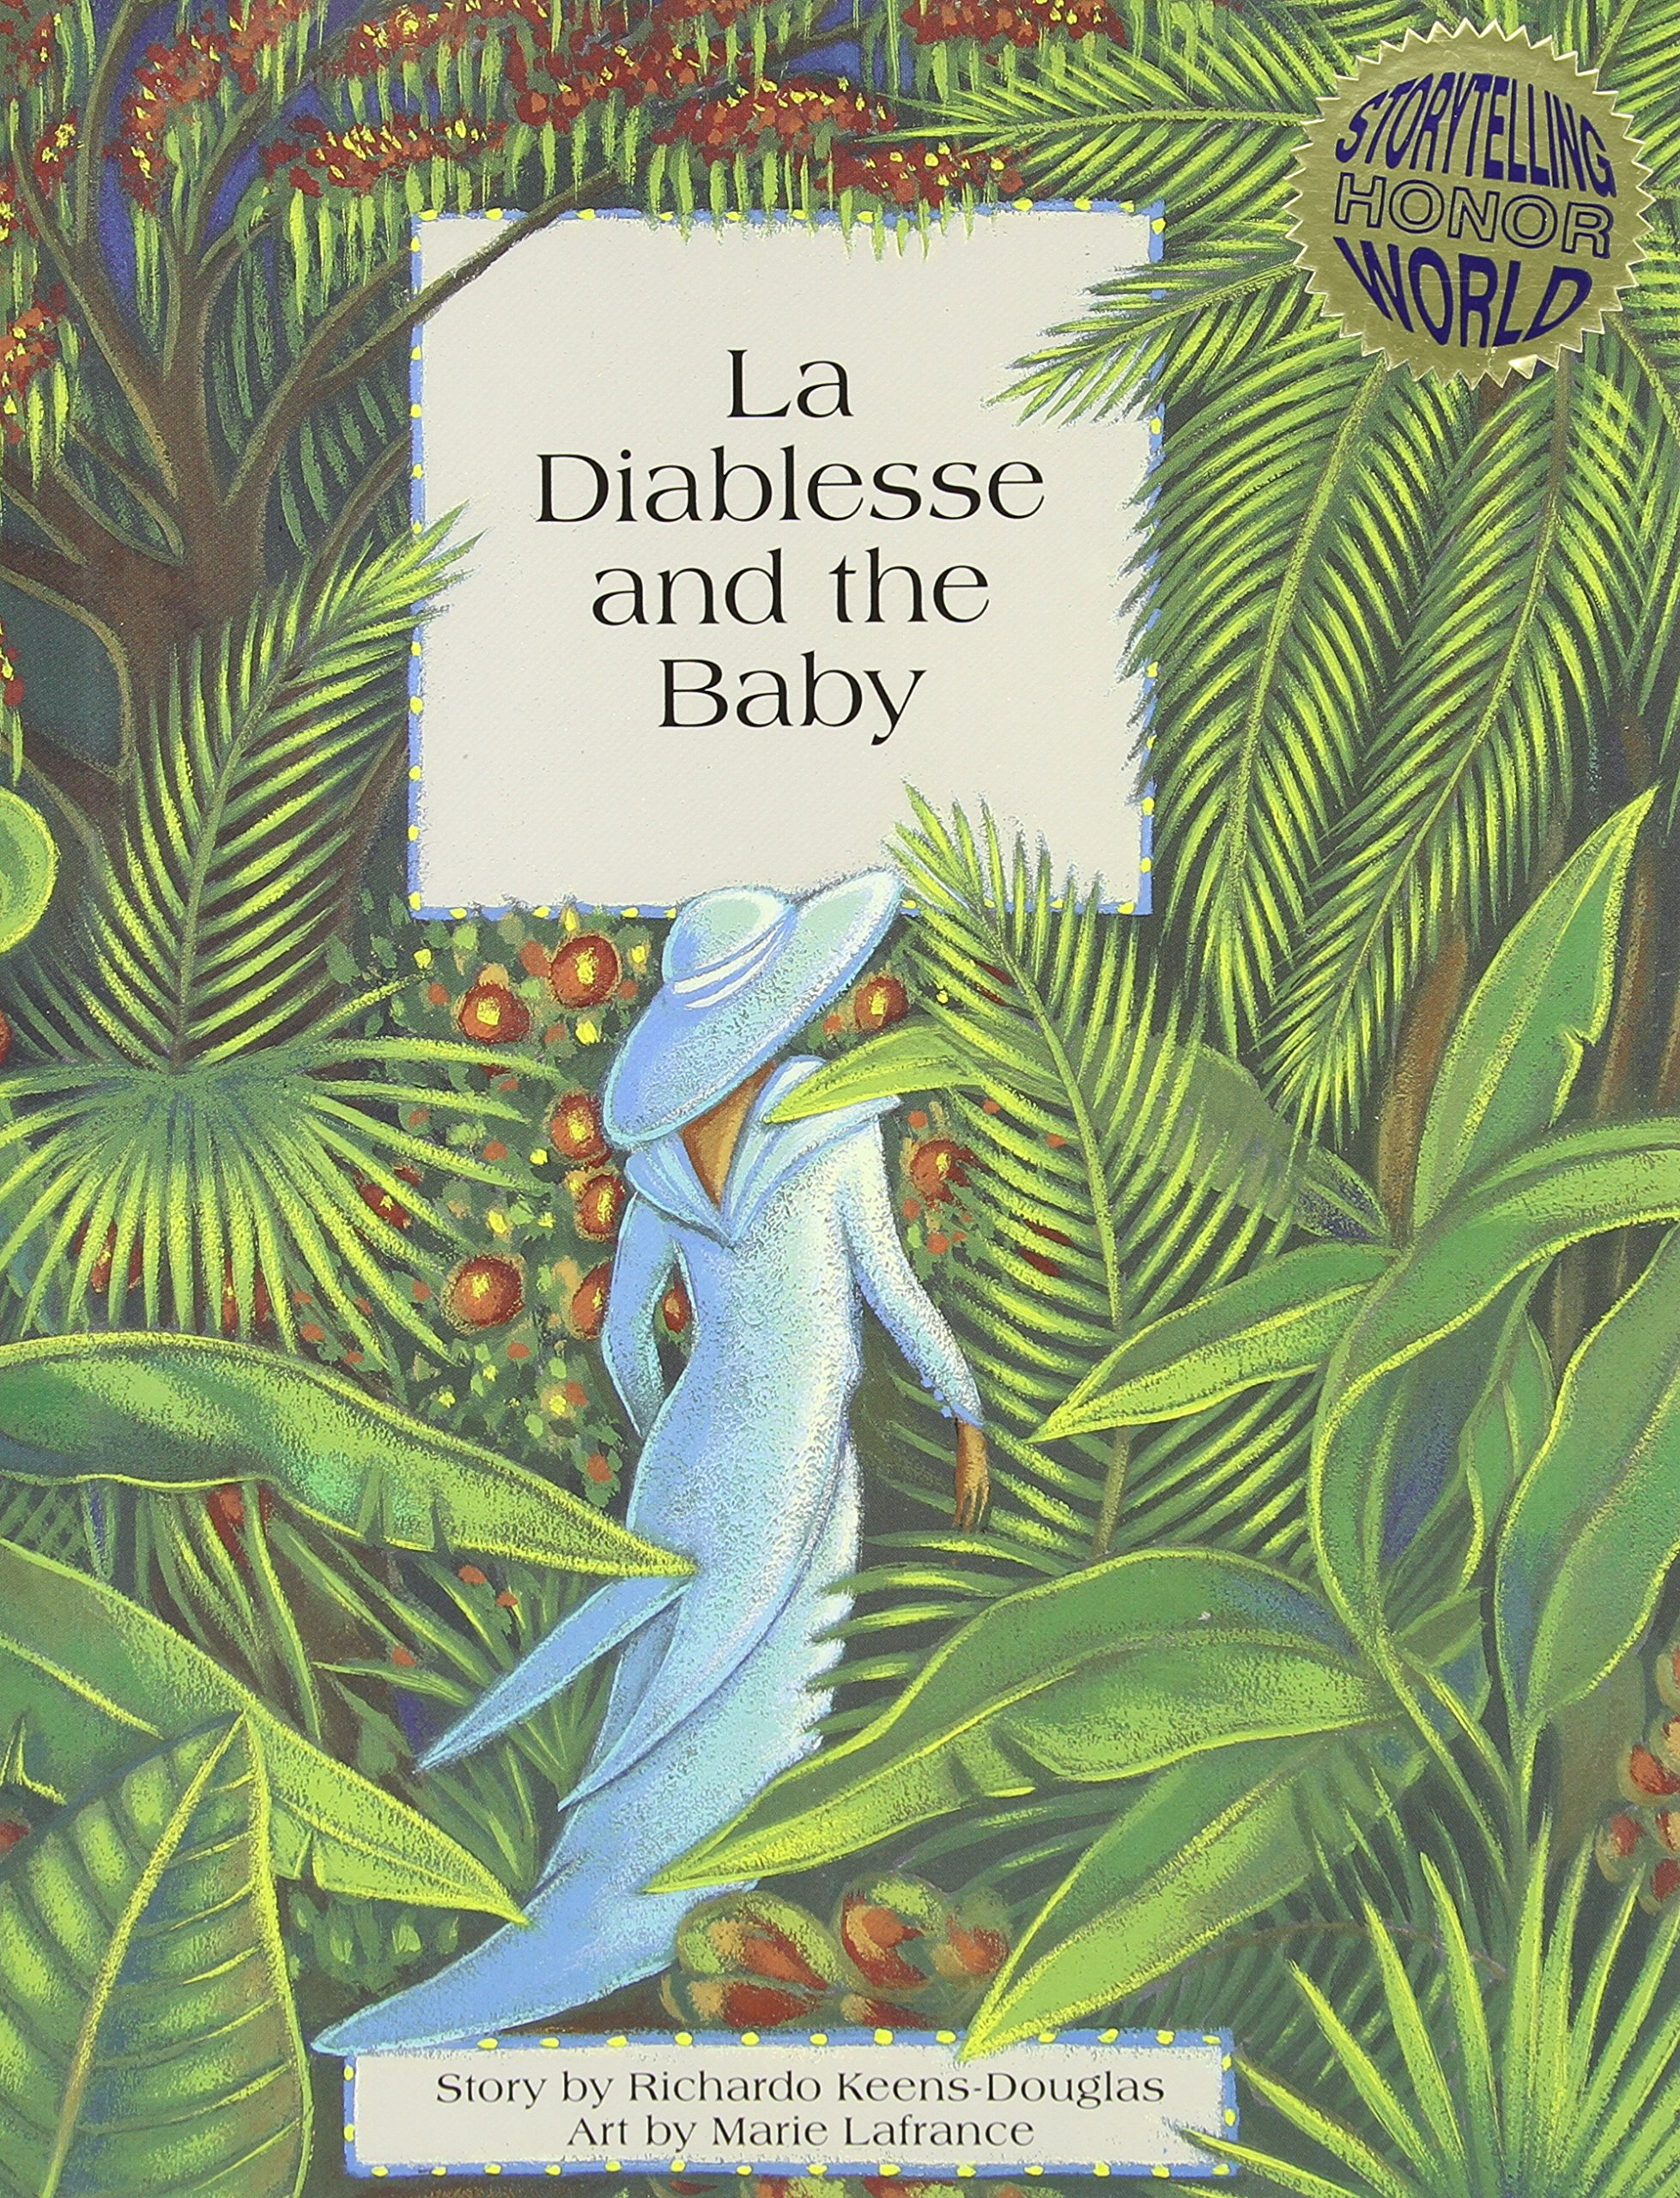 La Diablesse and the Baby (Caribbean Folktale)